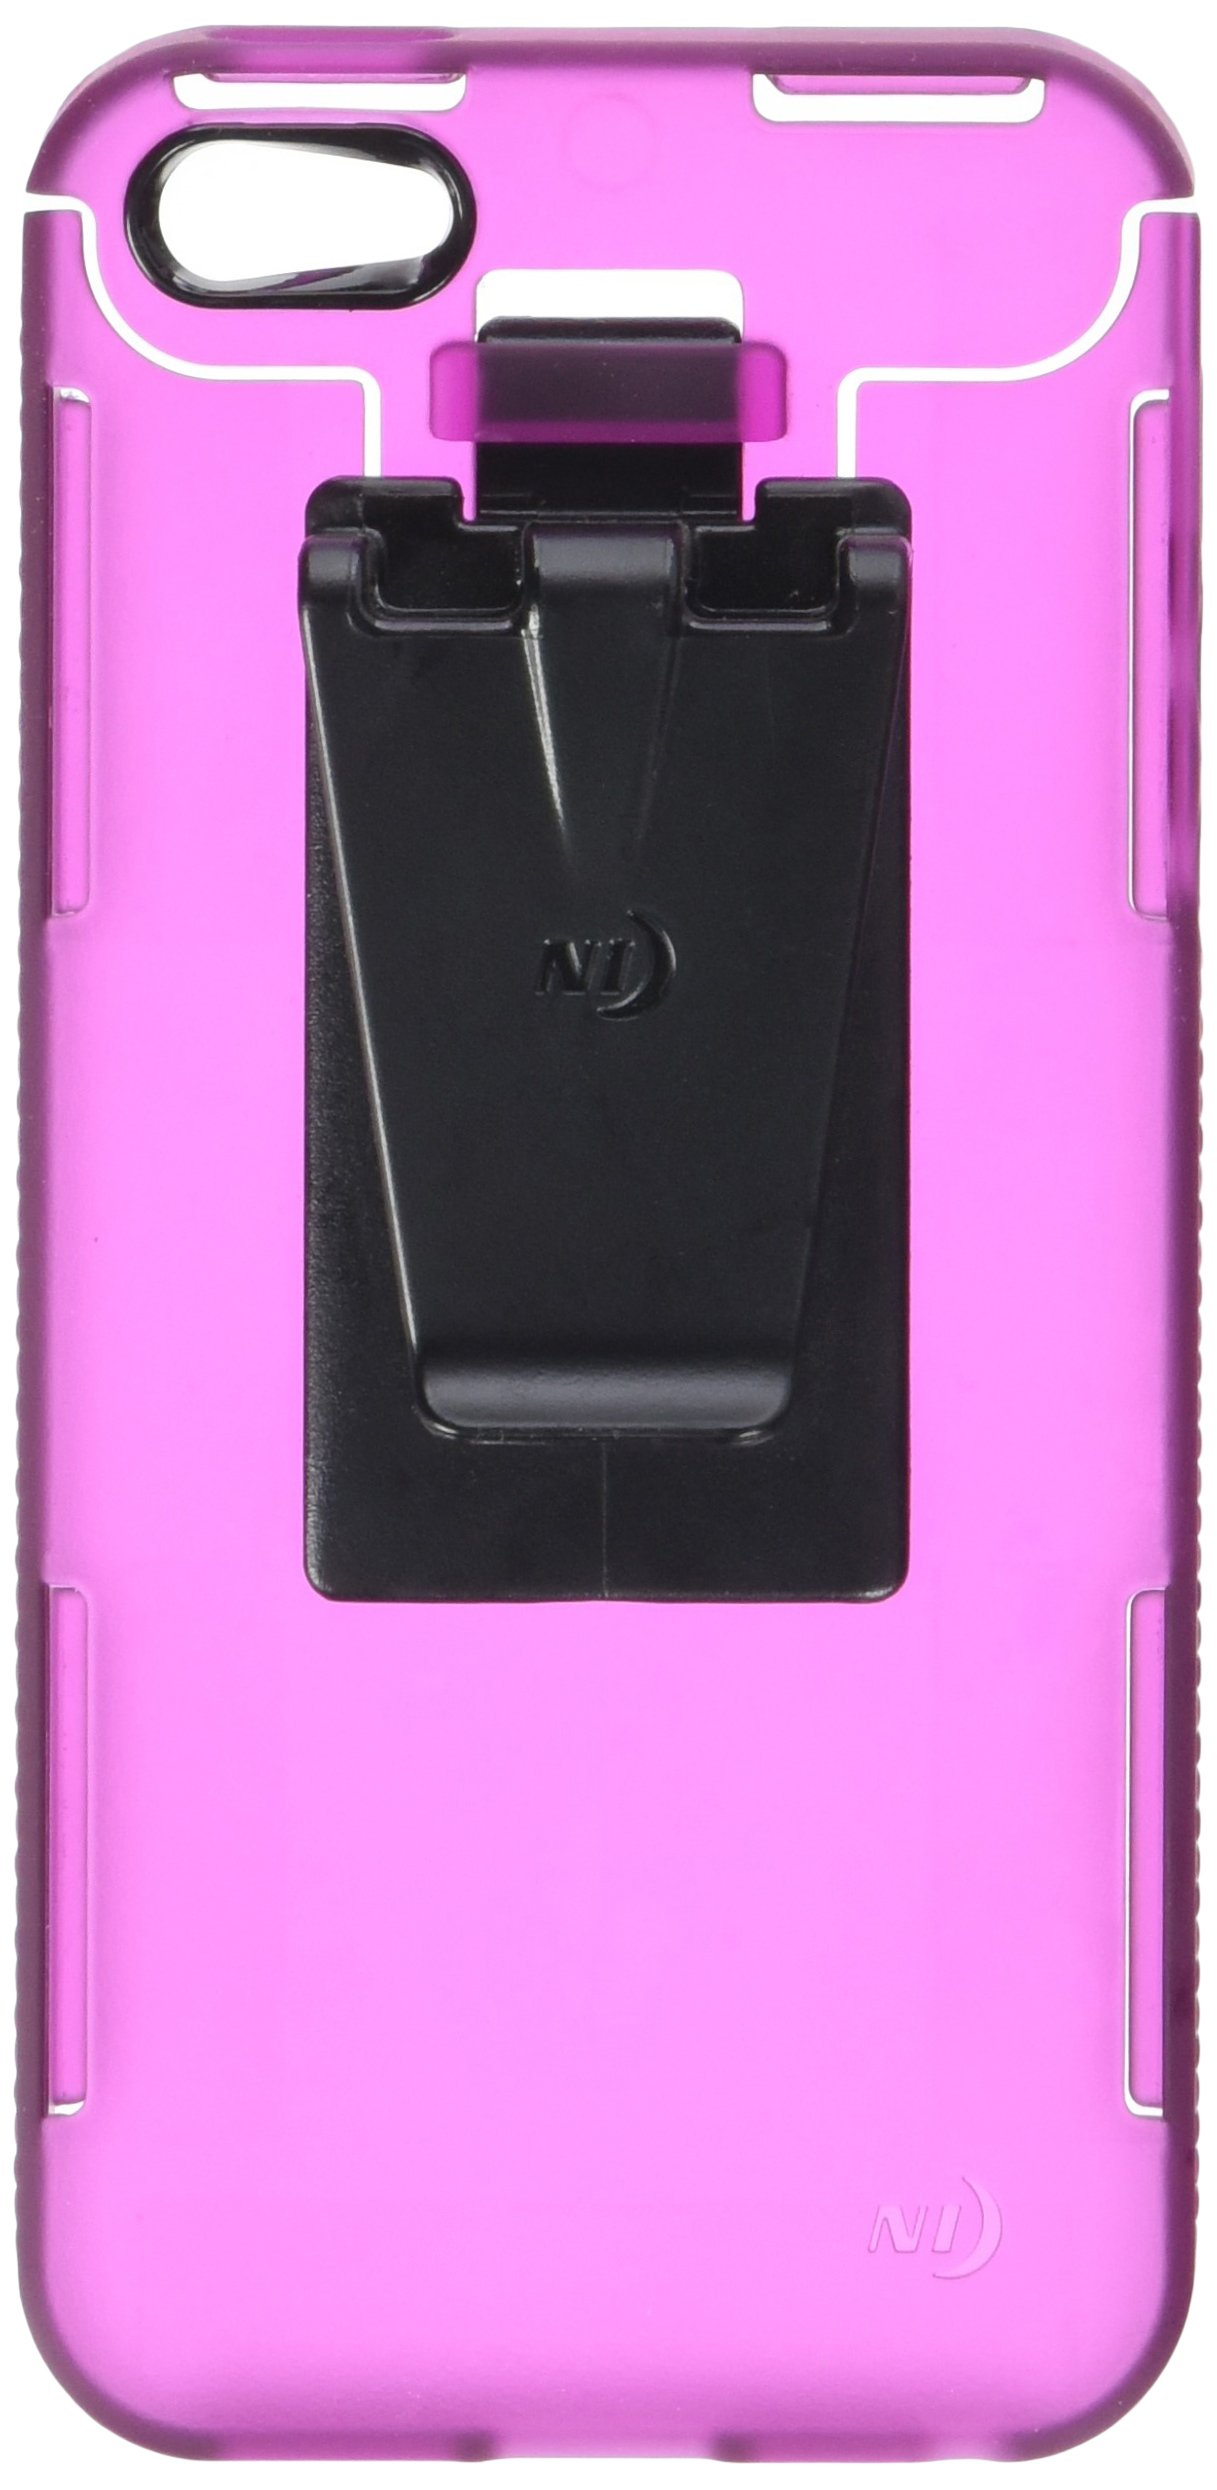 Nite Ize CNT-IP5-20TC Connect Case for iPhone 5-1 Pack - Retail Packaging - Translucent Cranberry